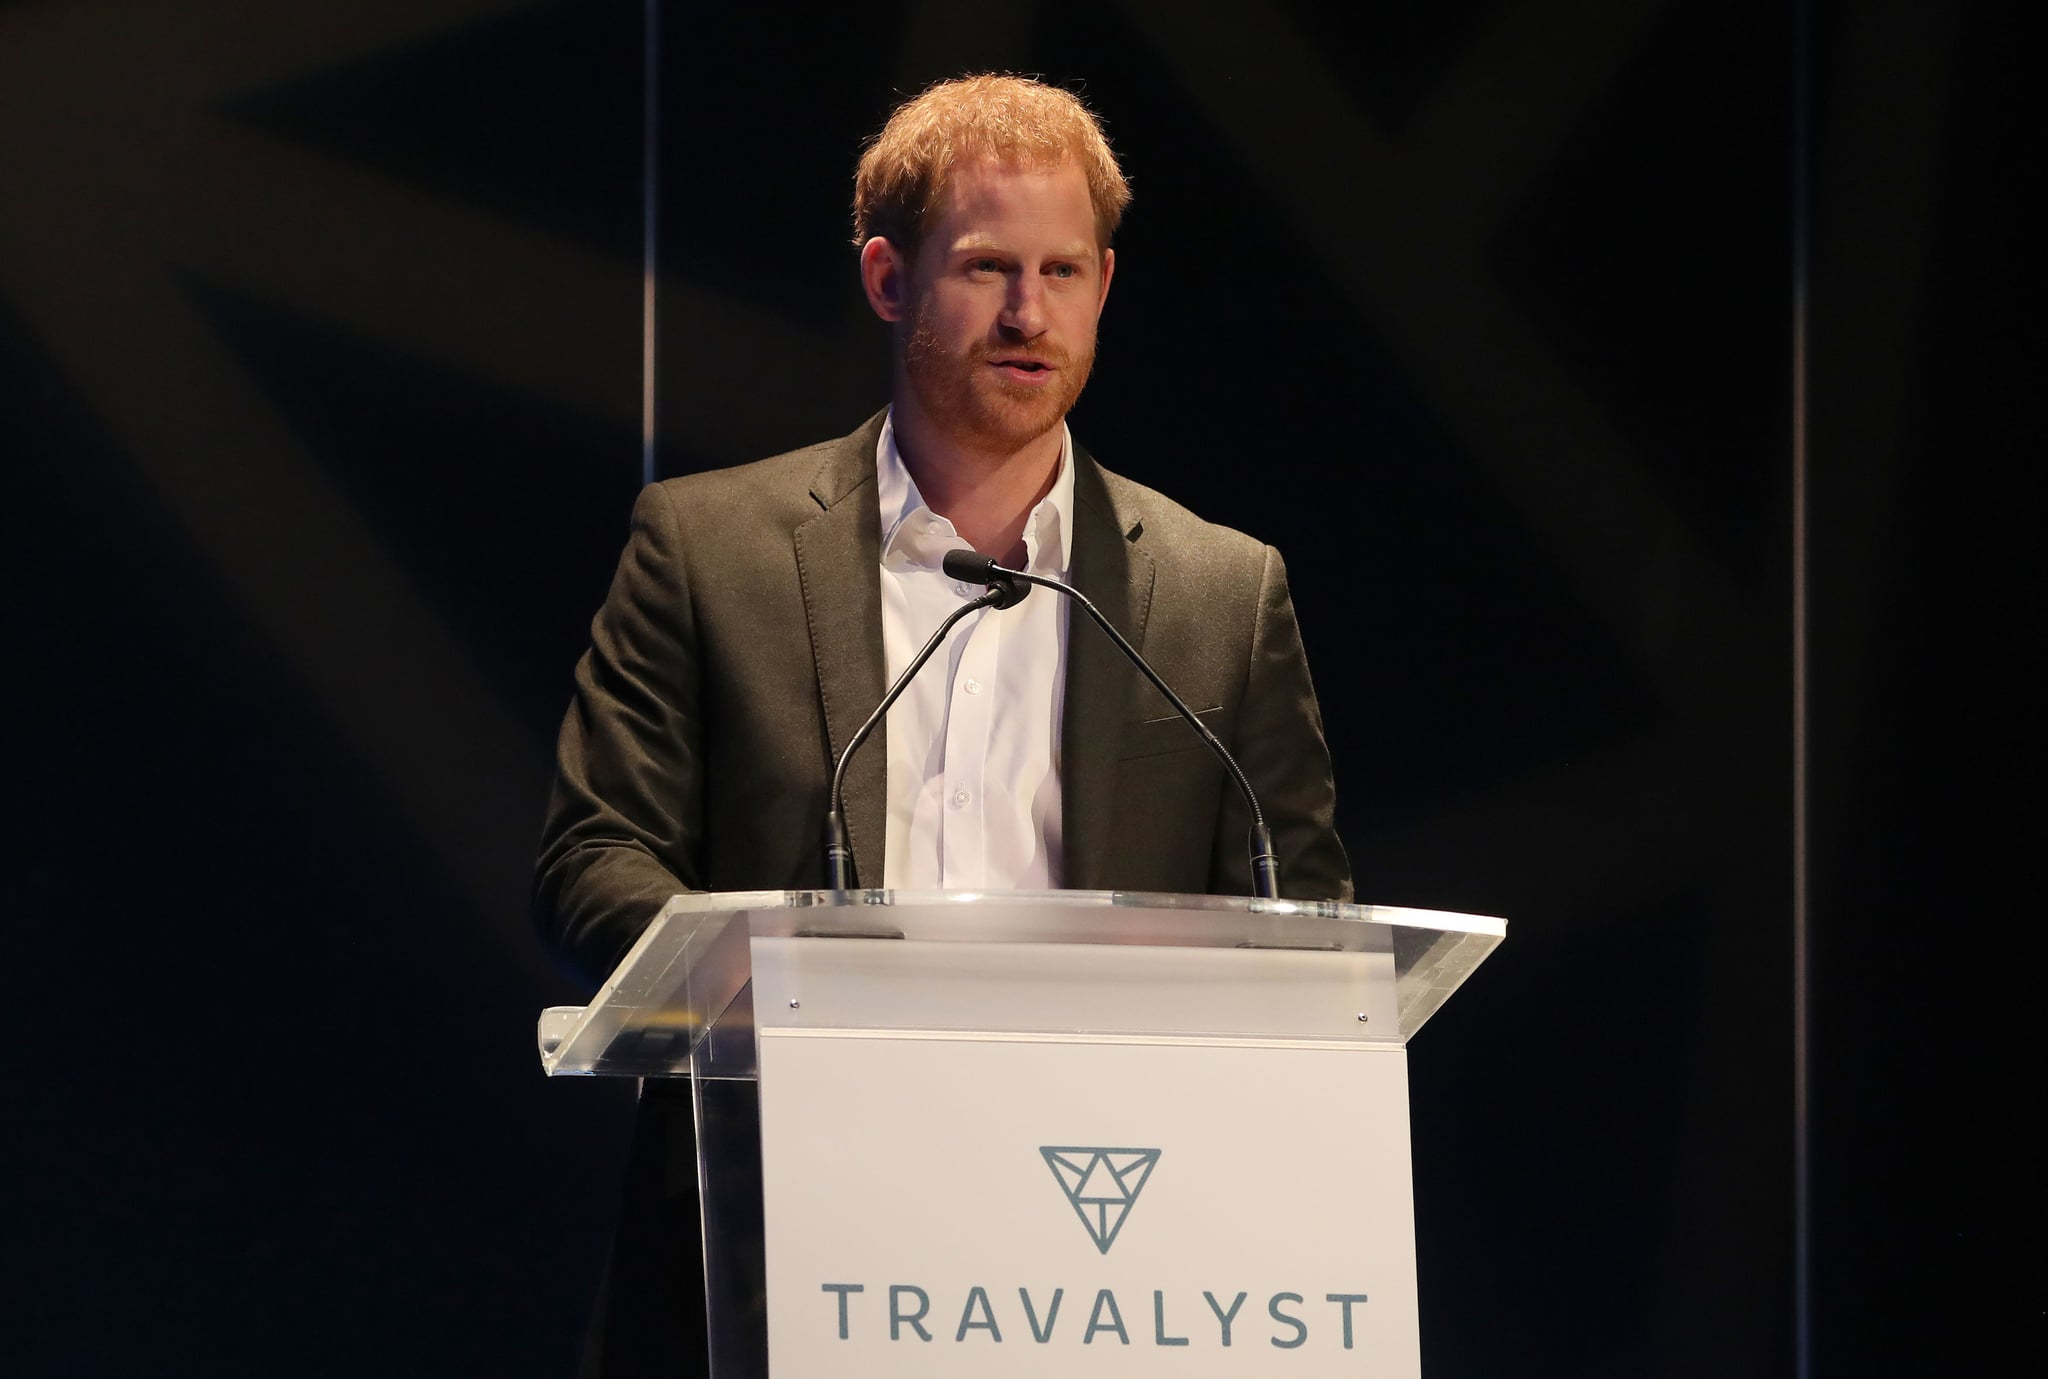 EDINBURGH, SCOTLAND - FEBRUARY 26: Prince Harry, Duke of Sussex speaks as he attends a sustainable tourism summit at the Edinburgh International Conference Centre on February 26, 2020 in Edinburgh, Scotland. (Photo by Andrew Milligan-WPA Pool/Getty Images)